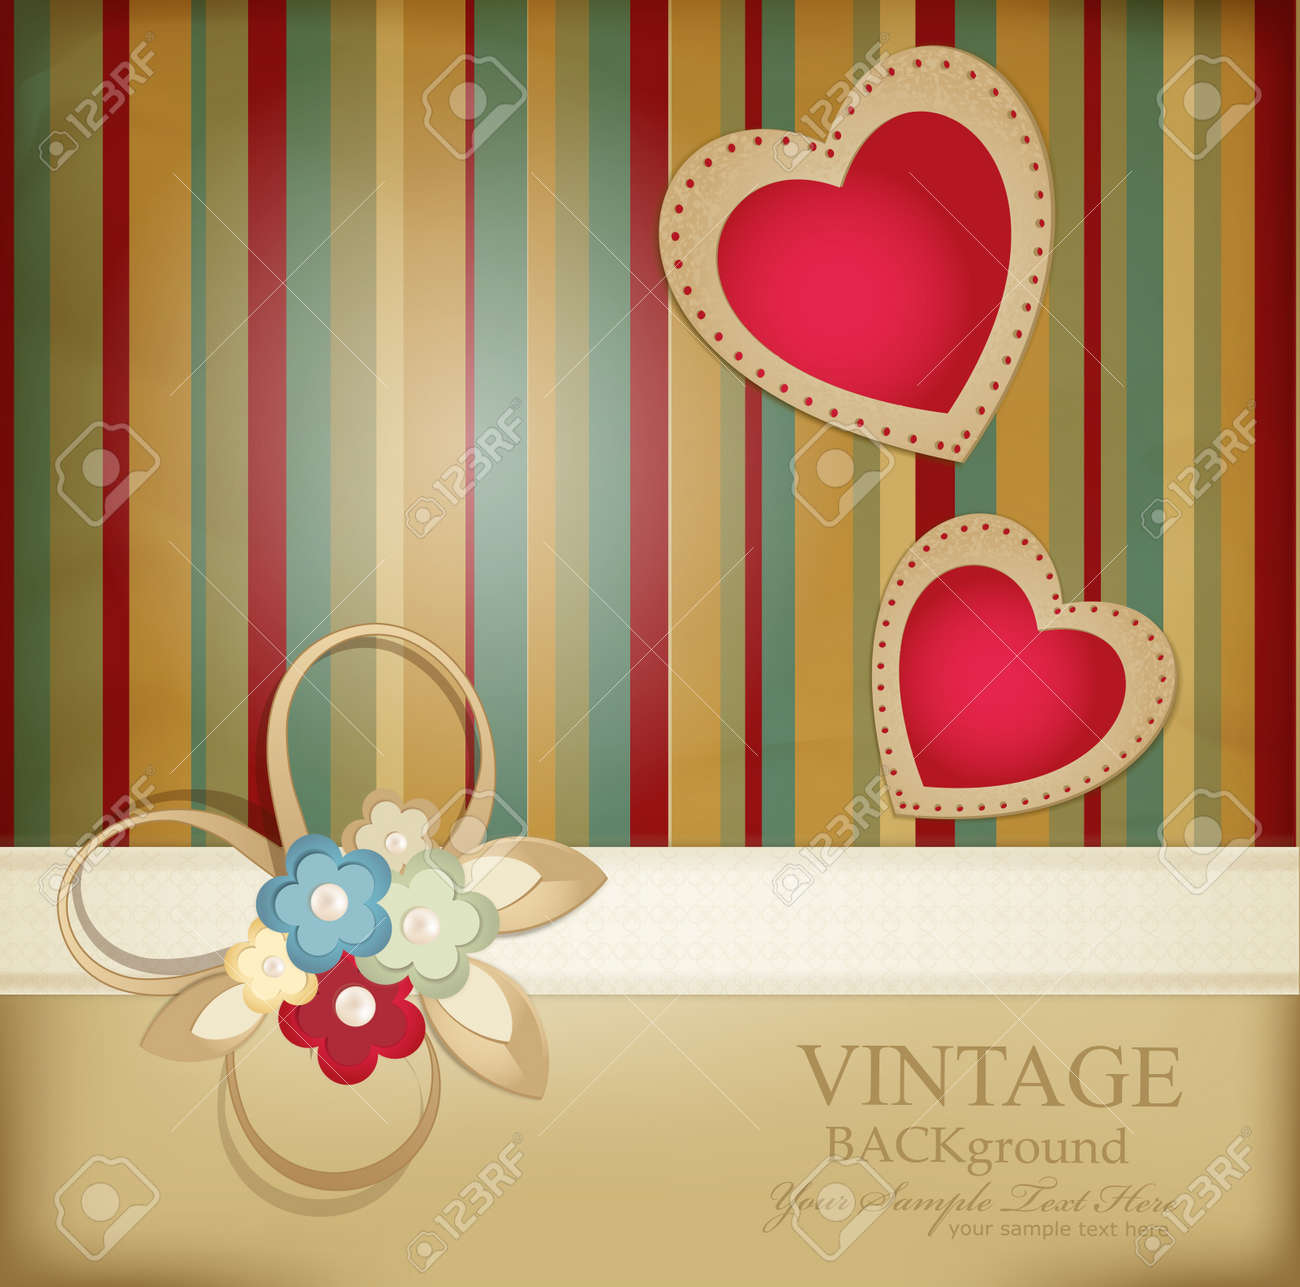 congratulation retro background with ribbons, flowers and two hearts on a striped background Stock Vector - 9157309